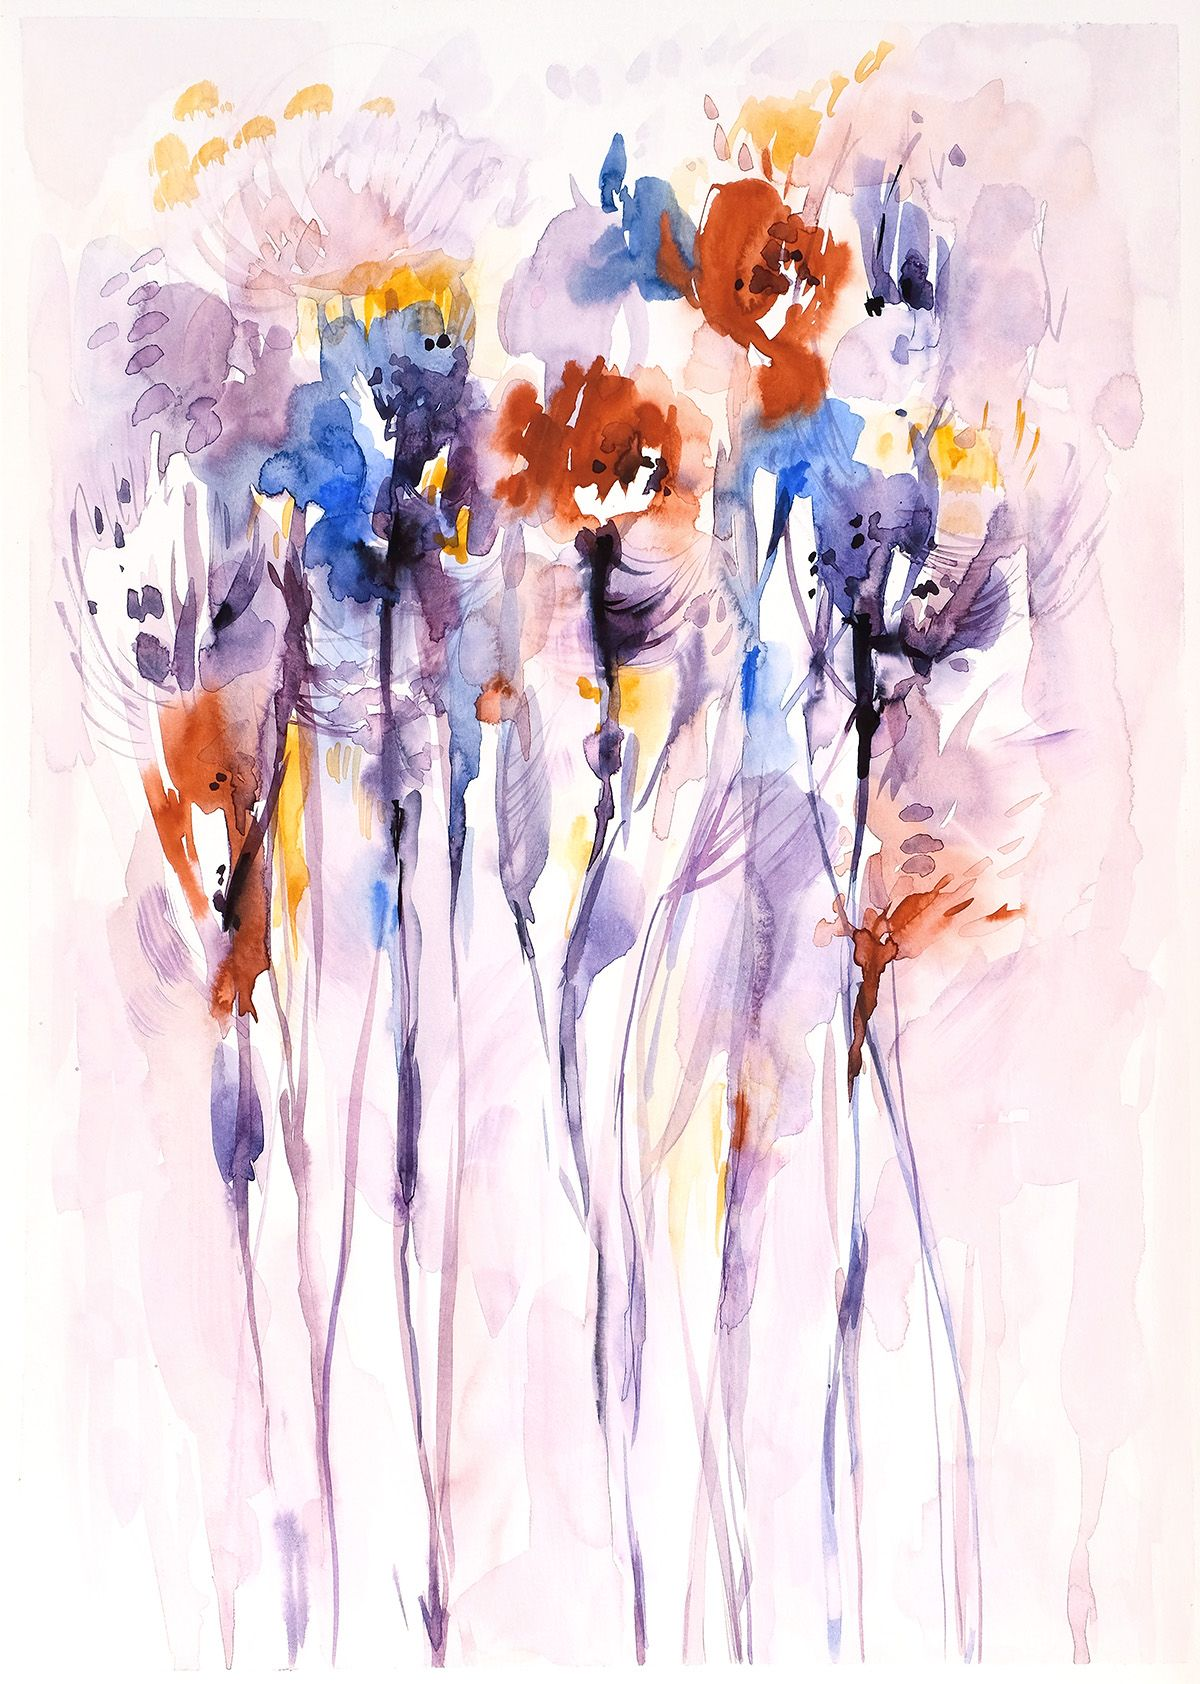 Watercolor Abstract Flower Painting By Lesia Binkin Ilustracao